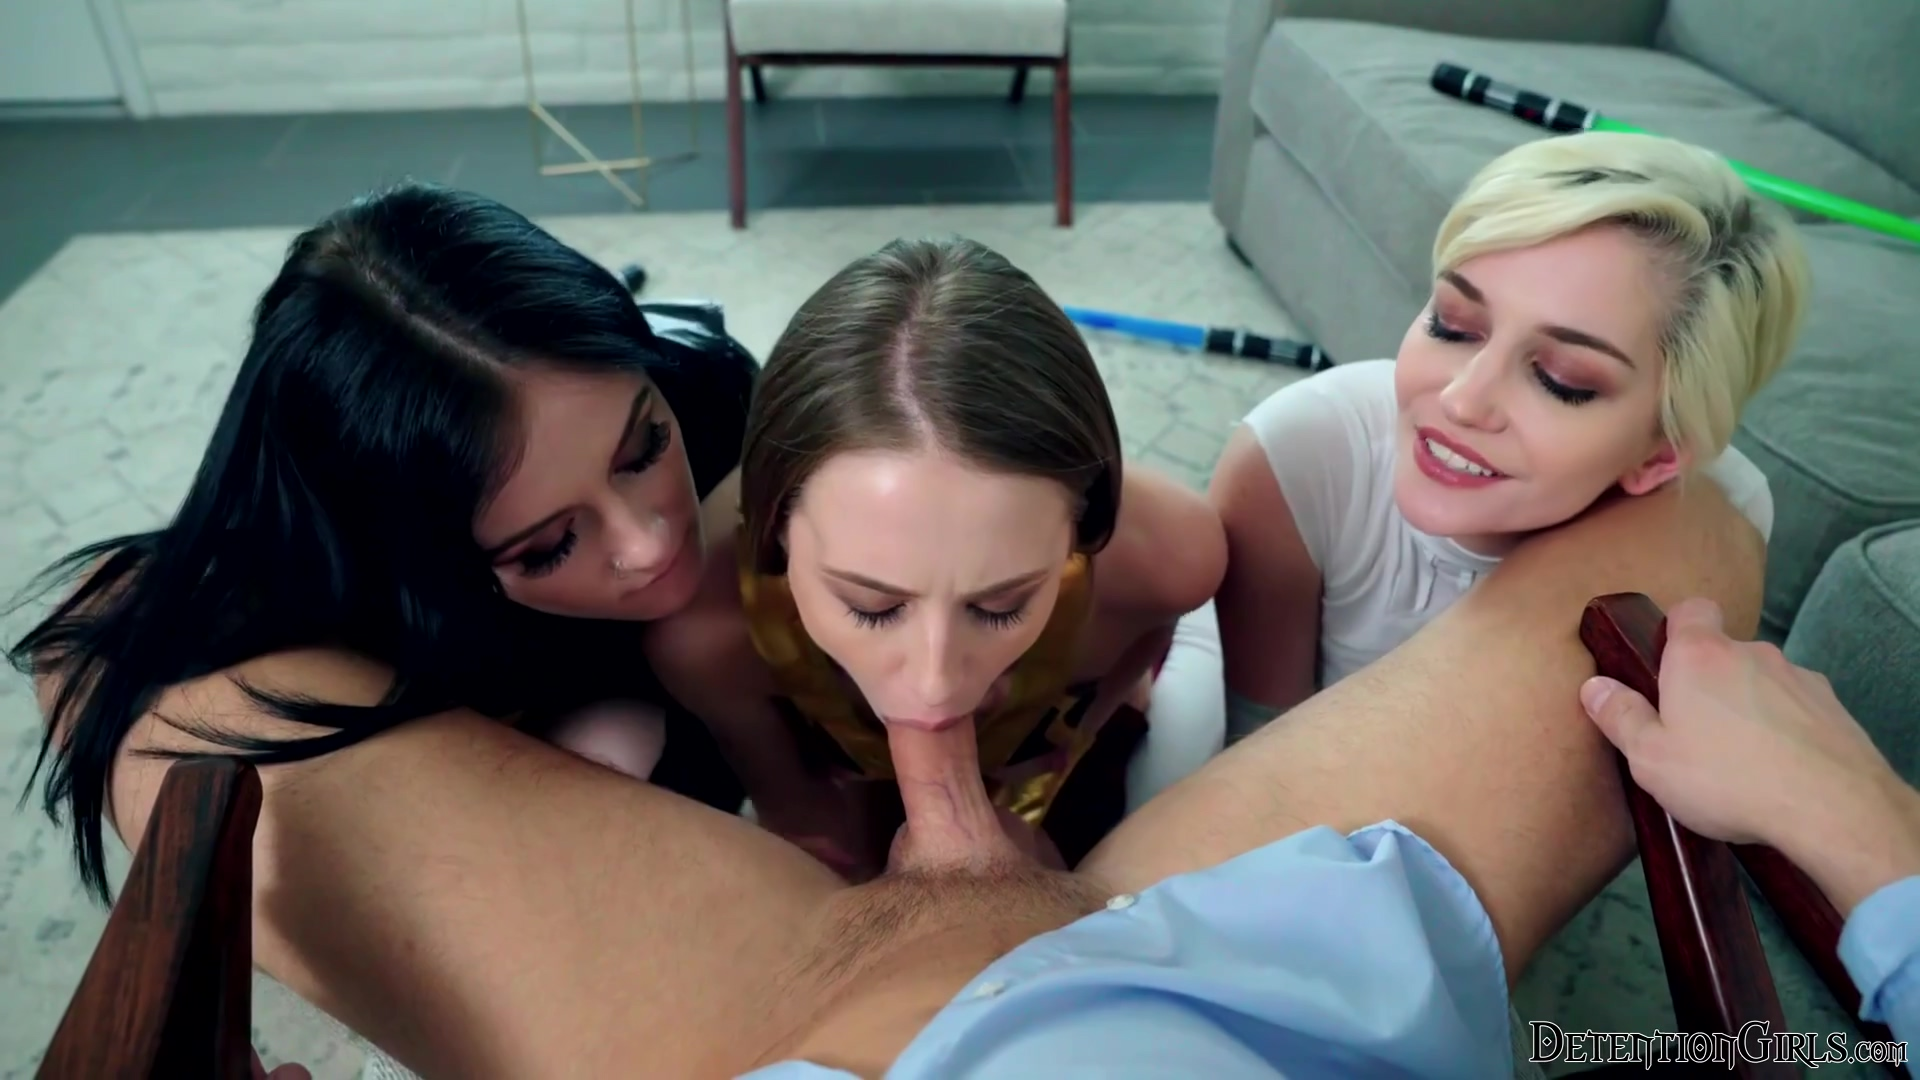 Star Whores May The 4th Be With You In Hd With Rosalyn Sphinx, Skye Blue And Abby Byens